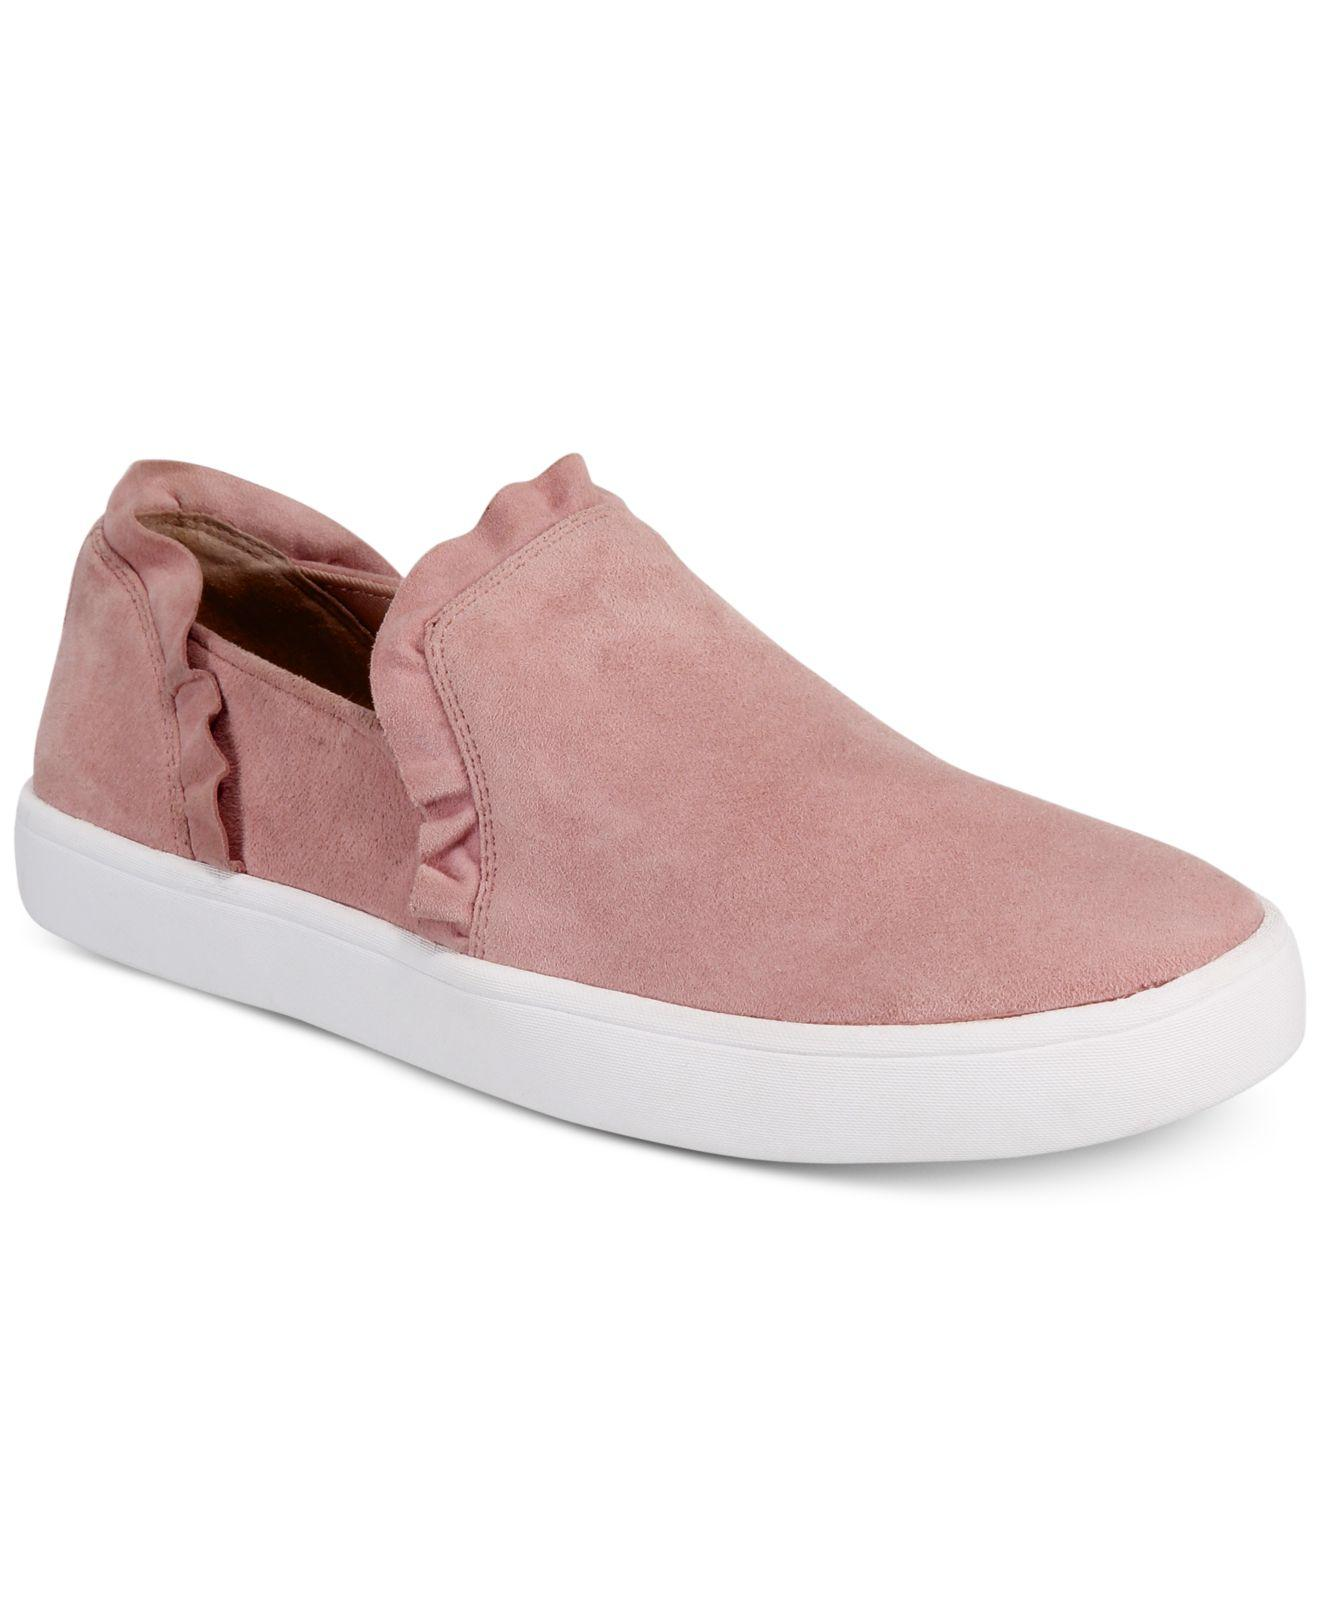 30199c63e388 Lyst - Kate Spade Lilly Fashion Sneakers in Pink